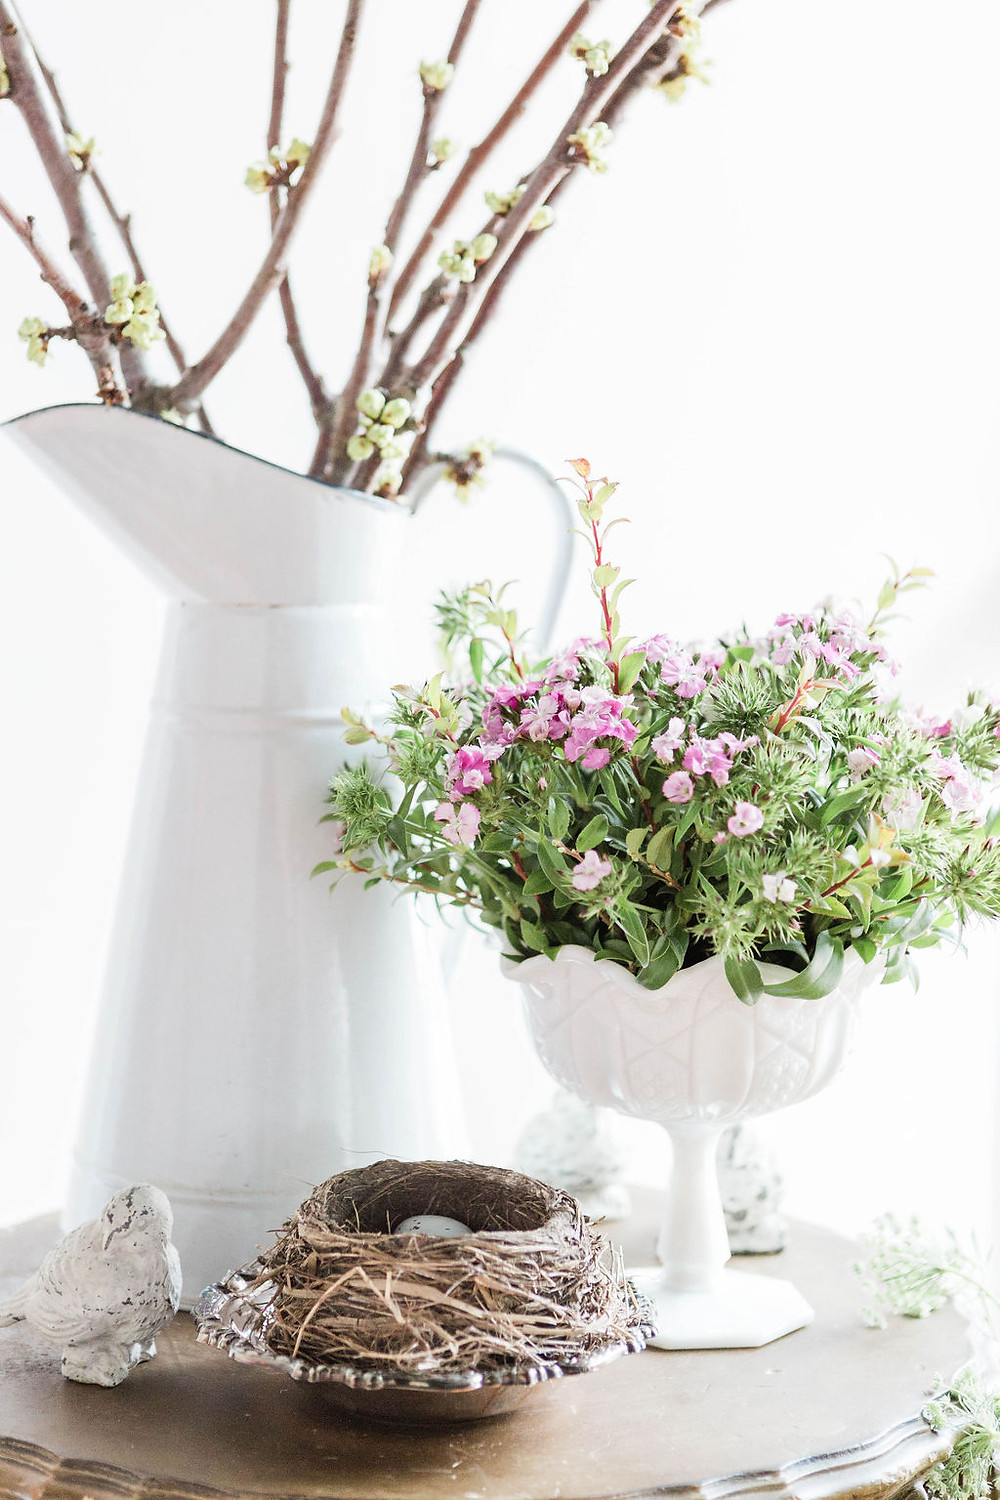 Table display holds birds nest, tiny pink florals, and springtime twigs in a french enamel vintage pitcher